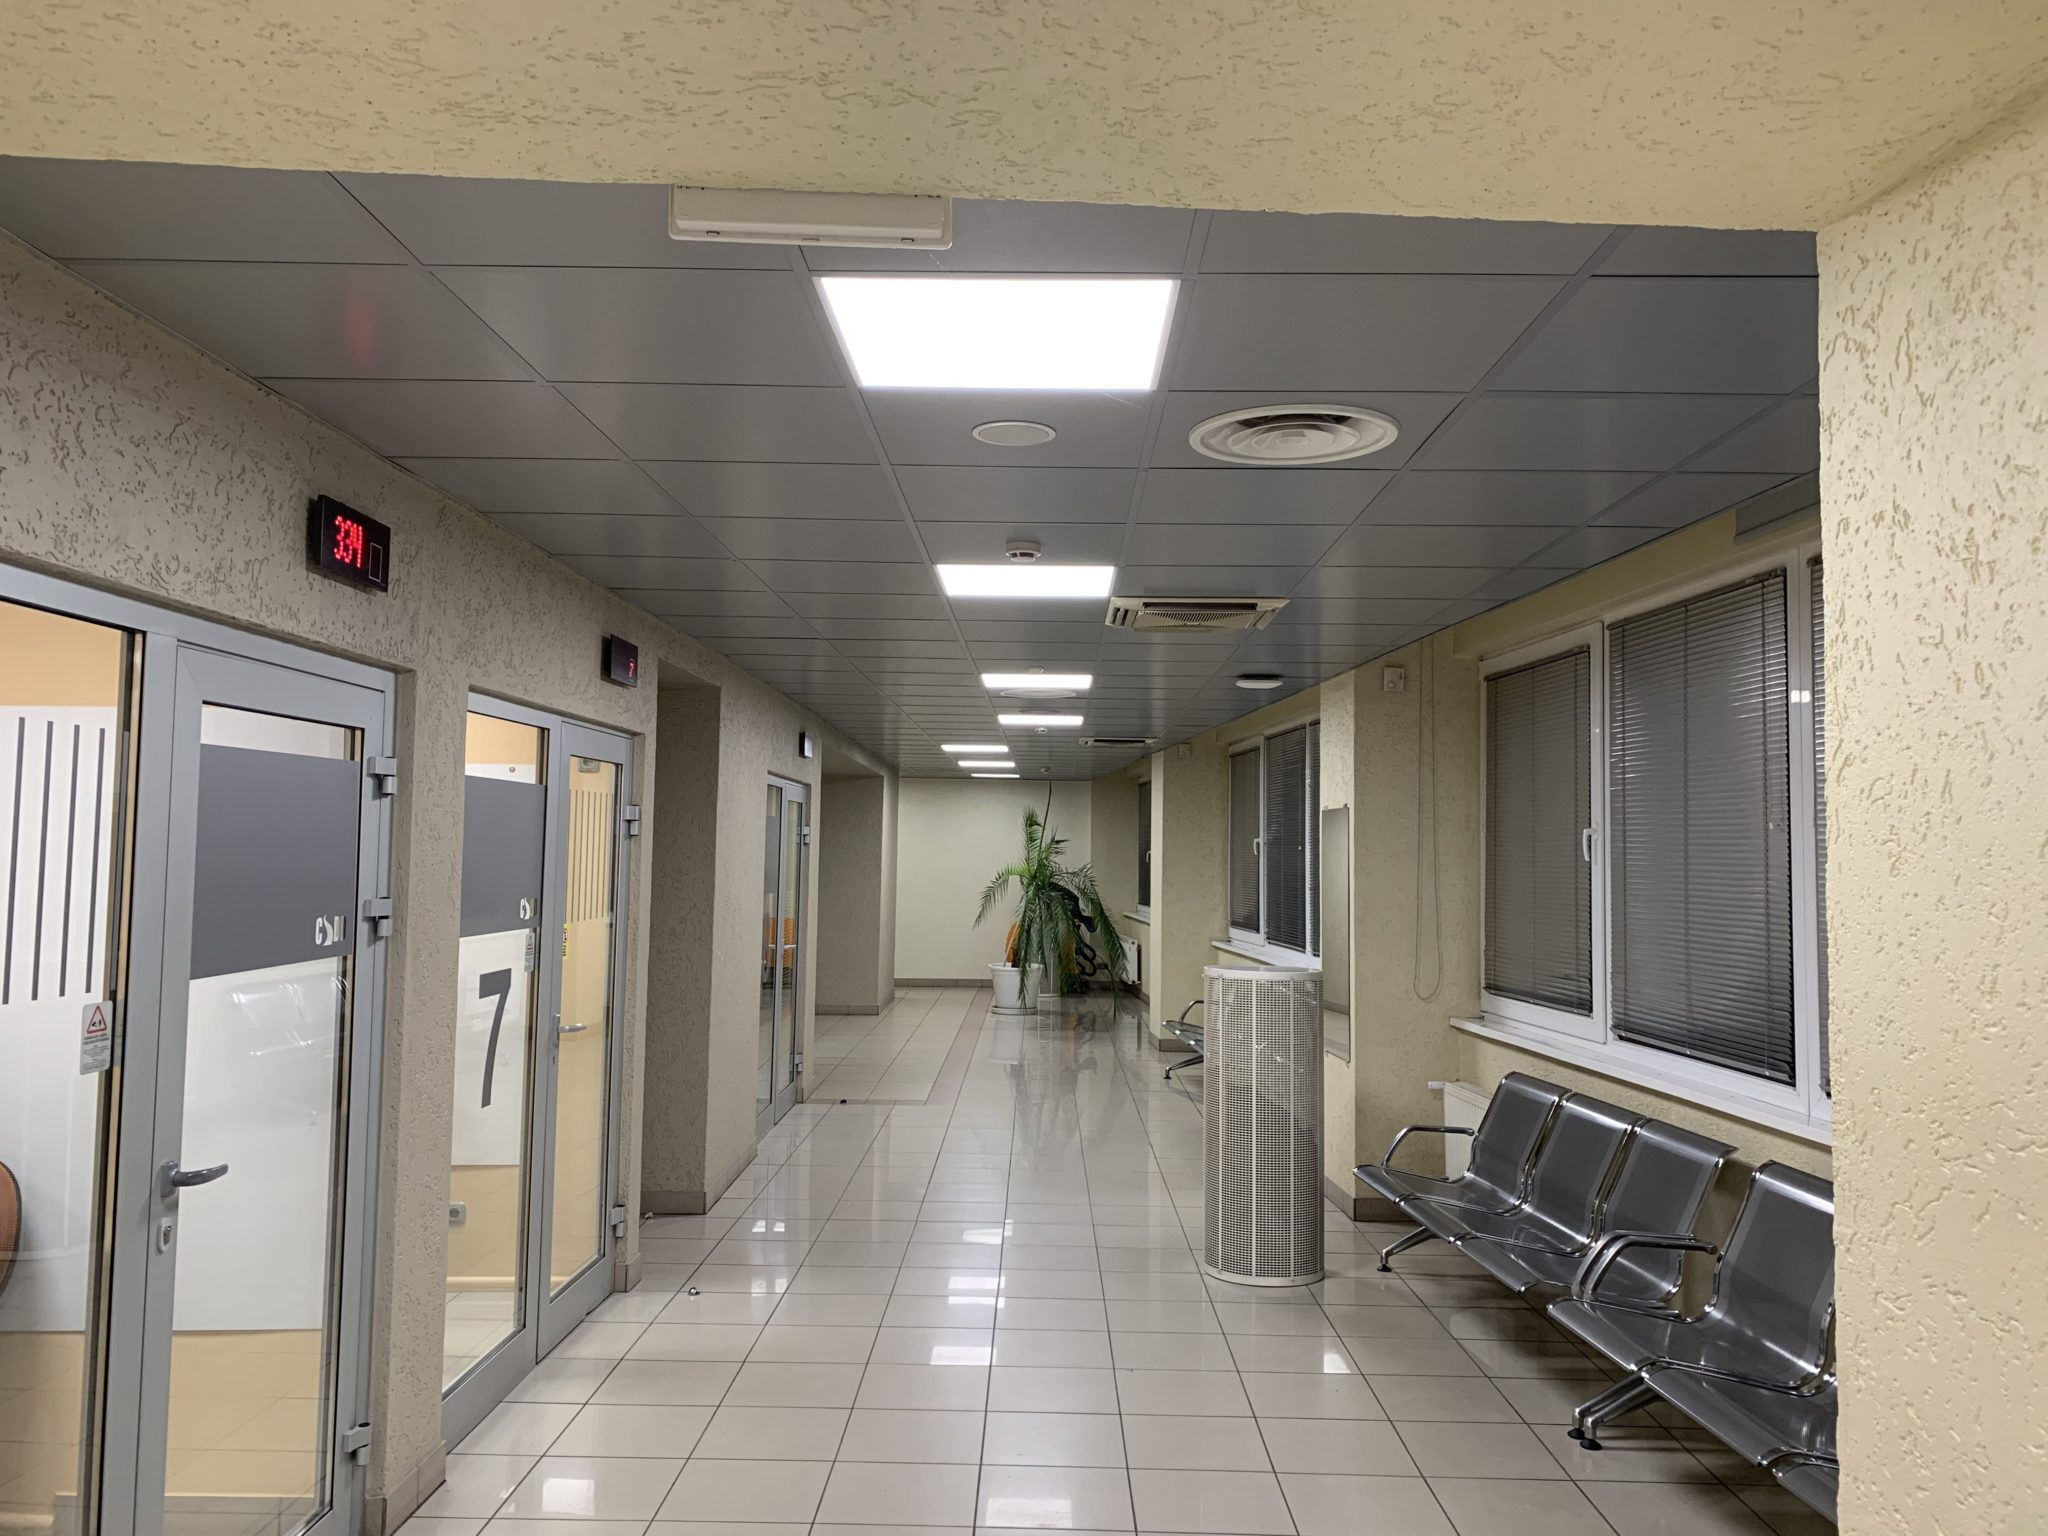 Hallway iluminated with Philips Led surface-mounted luminaries at CSSD customer service center